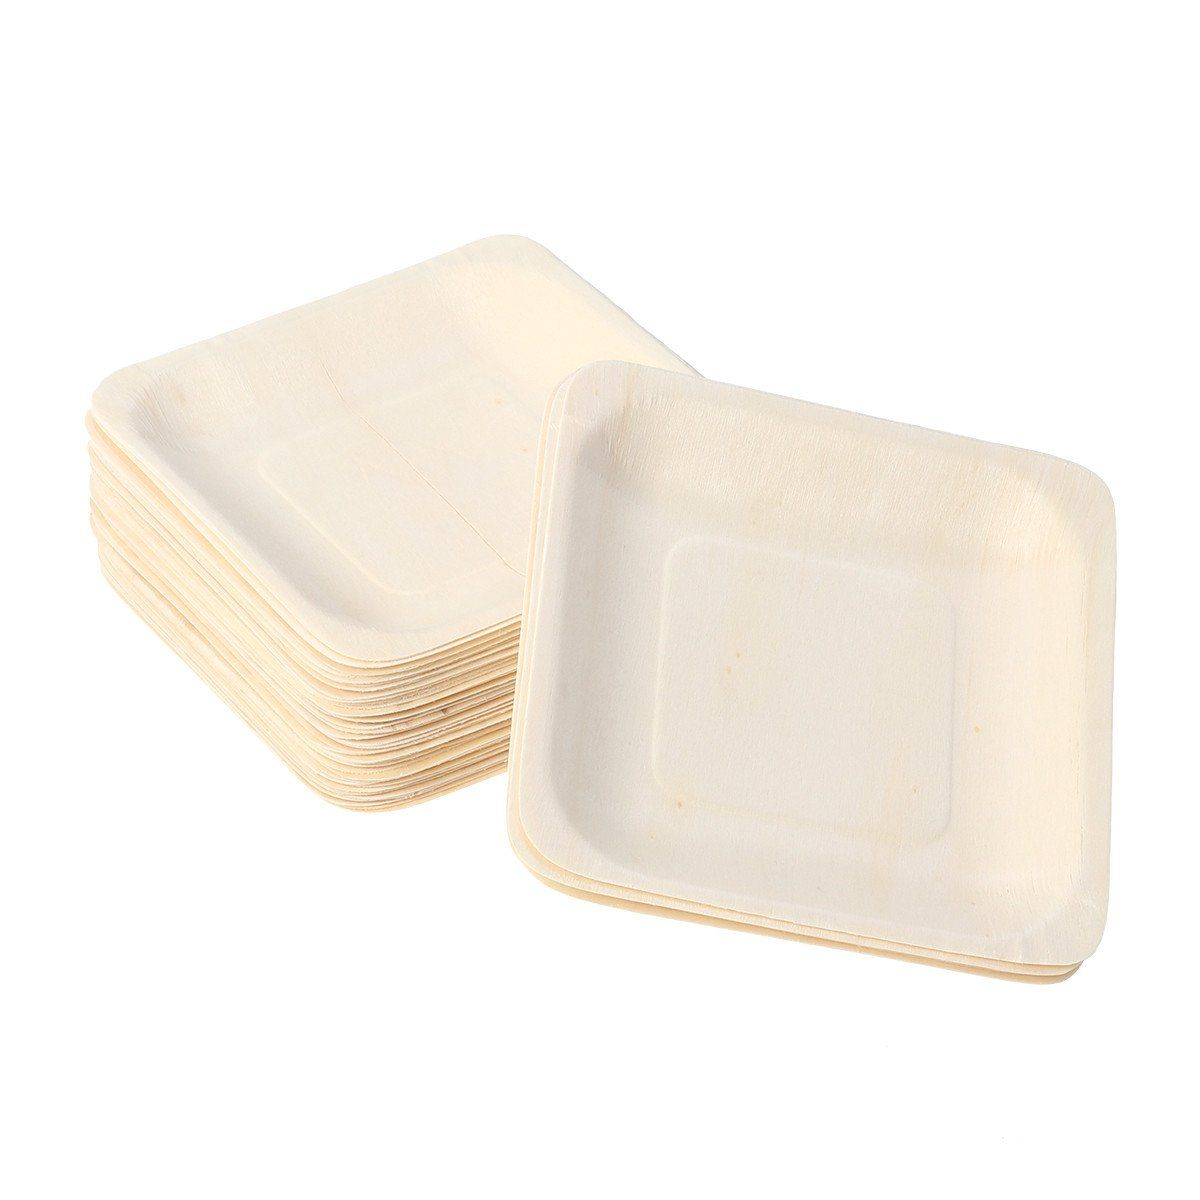 50pcs Square Disposable Wooden Party Plates In 2019 Products